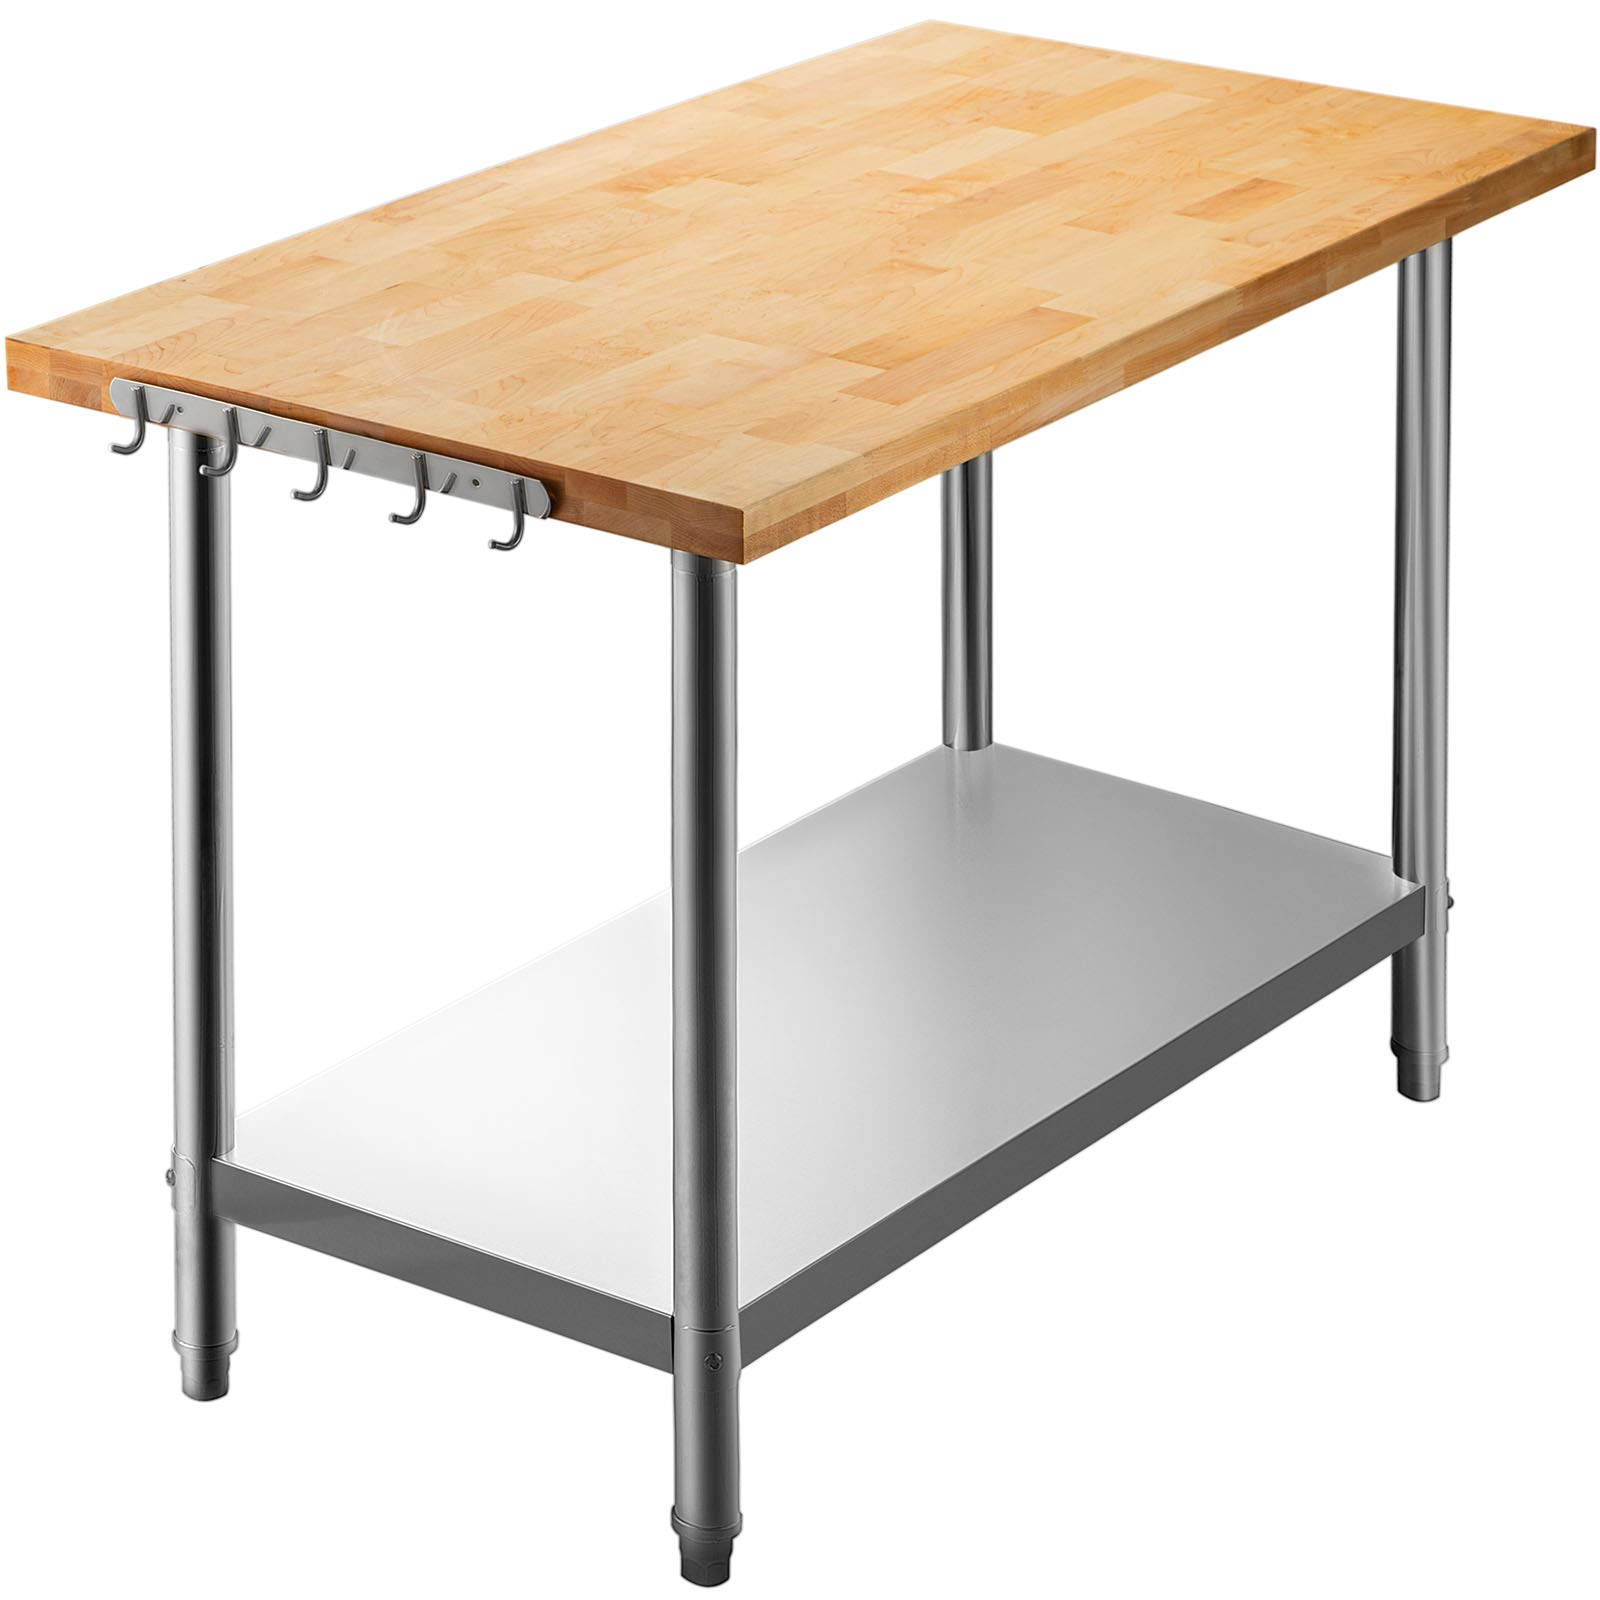 VEVOR Maple Top Work Table, 36 x 30 Inches Stainless Steel Kitchen Prep Table Wood, 1.5 Inch Thick Kitchen Maple Table with Lower Shelf and Feet, Stainless Steel Table for Home and Kitchen